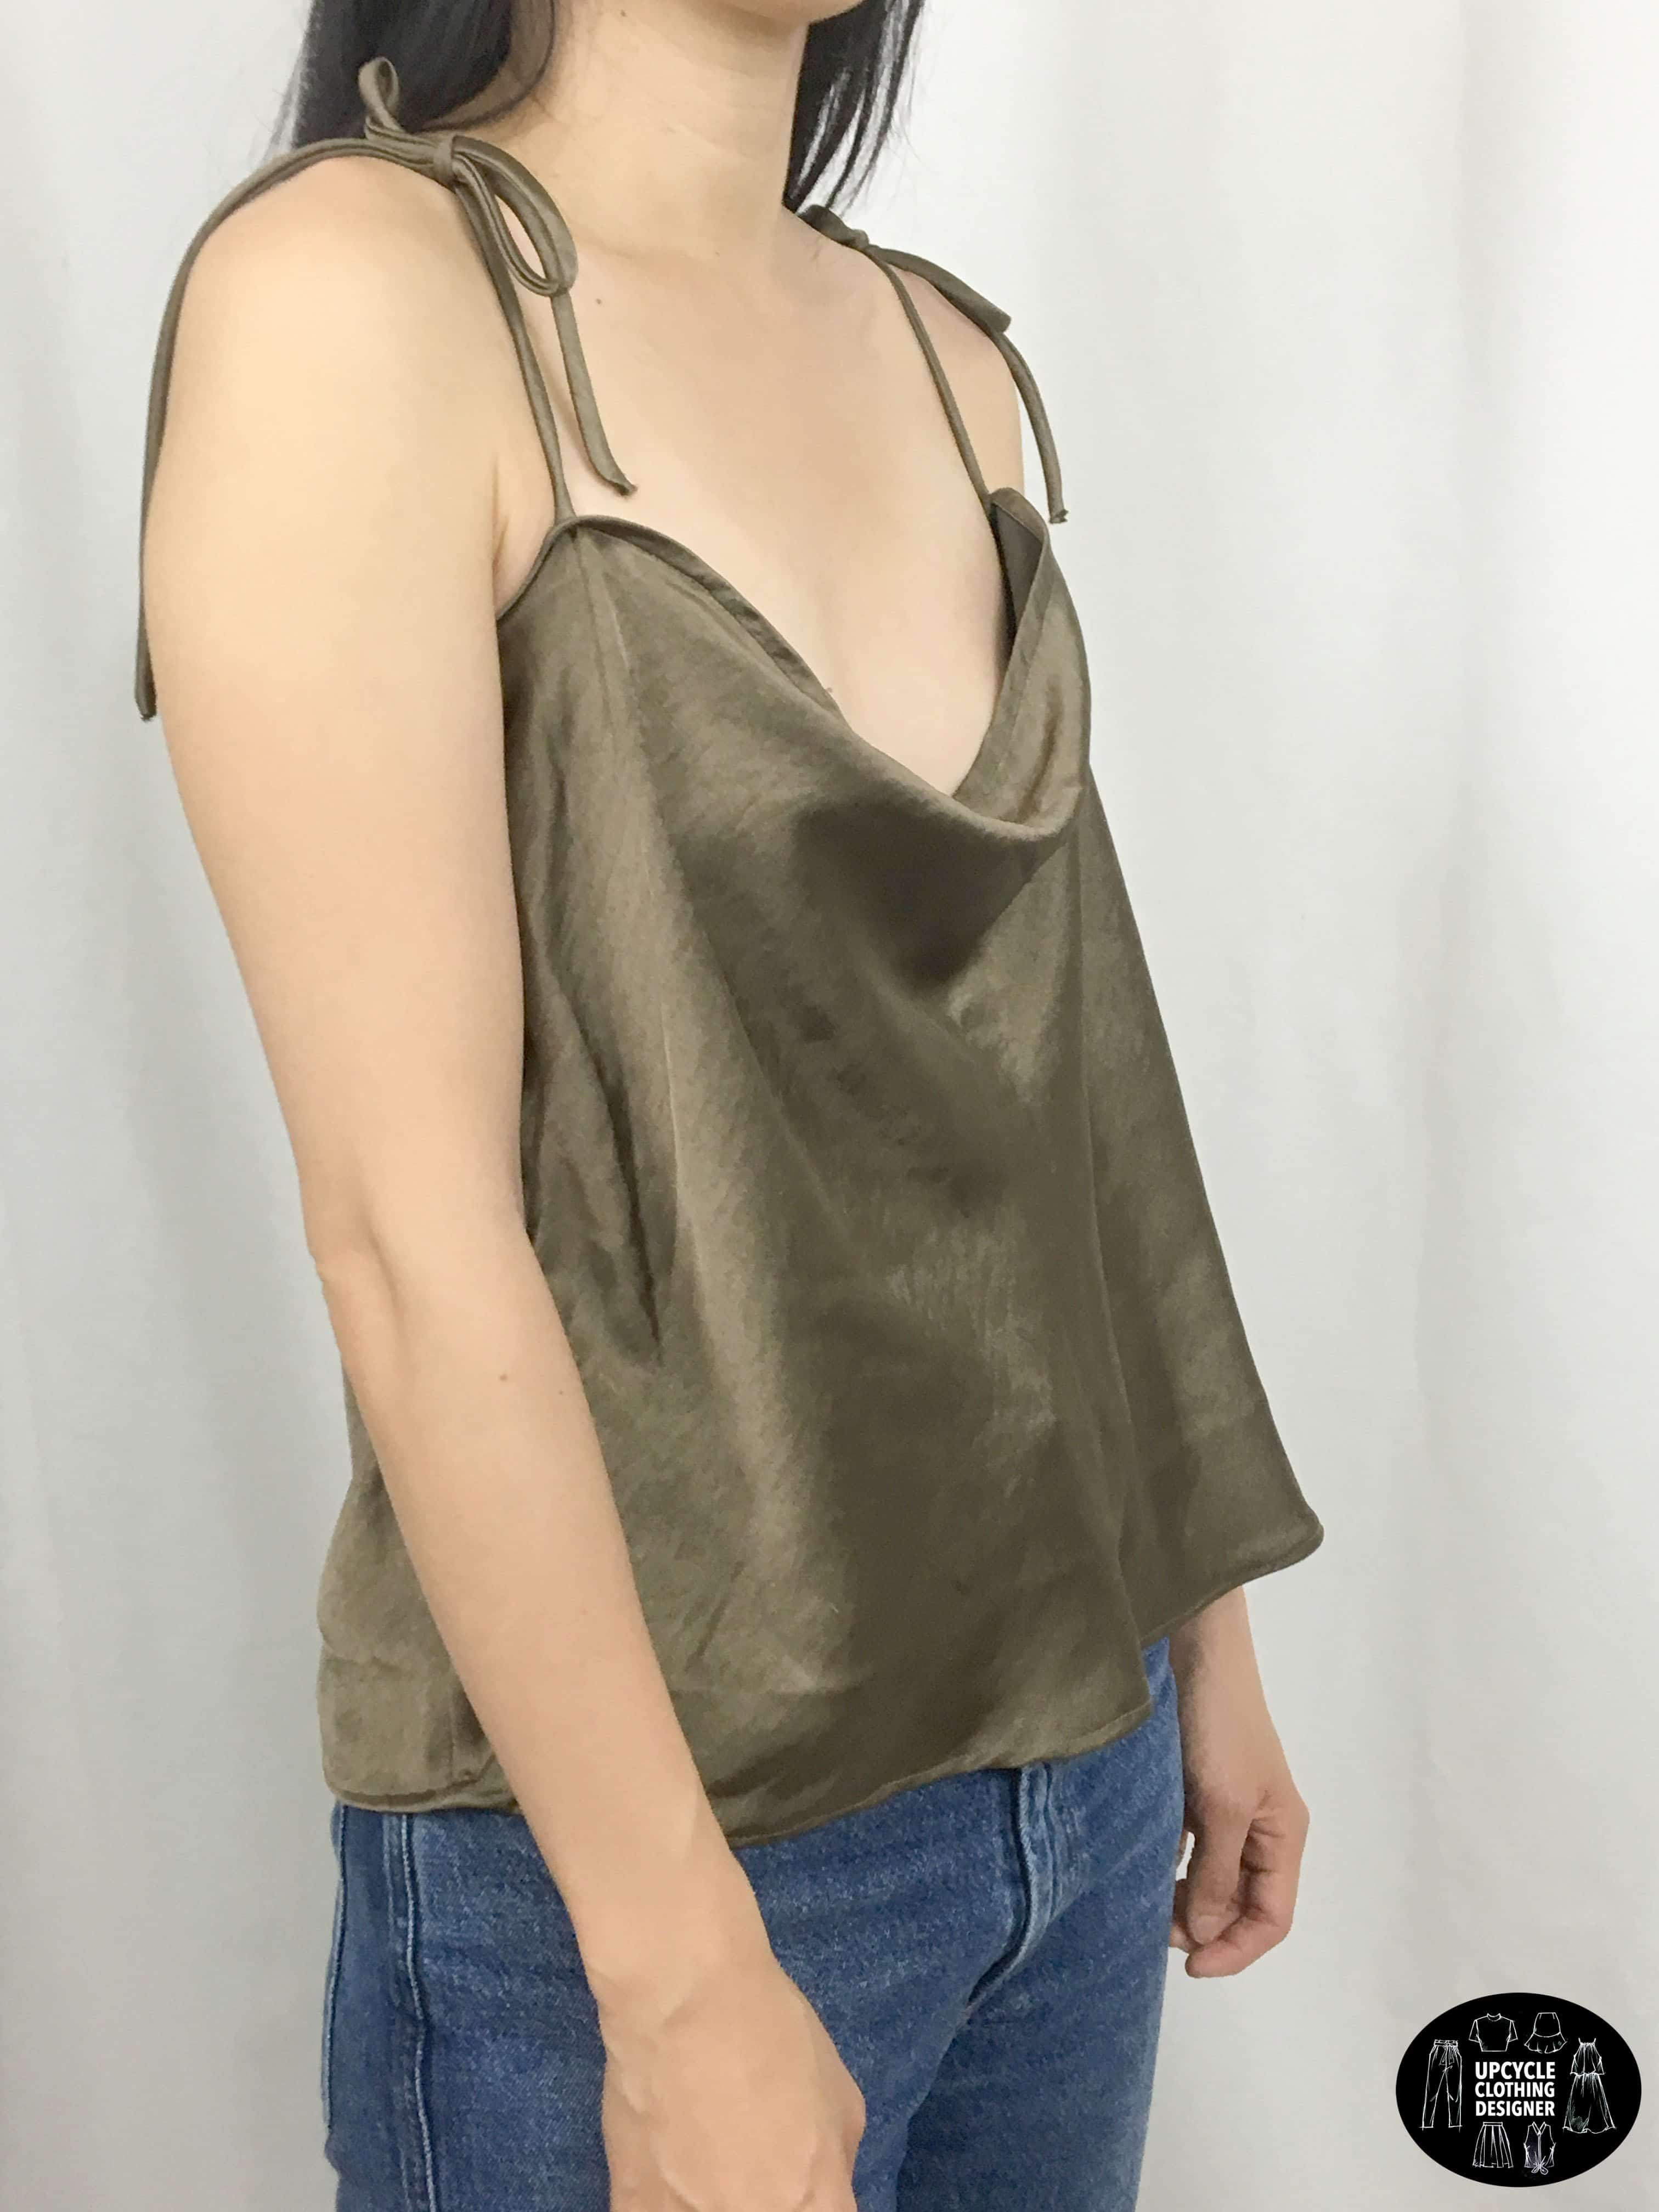 Sideview of camisole top from upcycle skirt